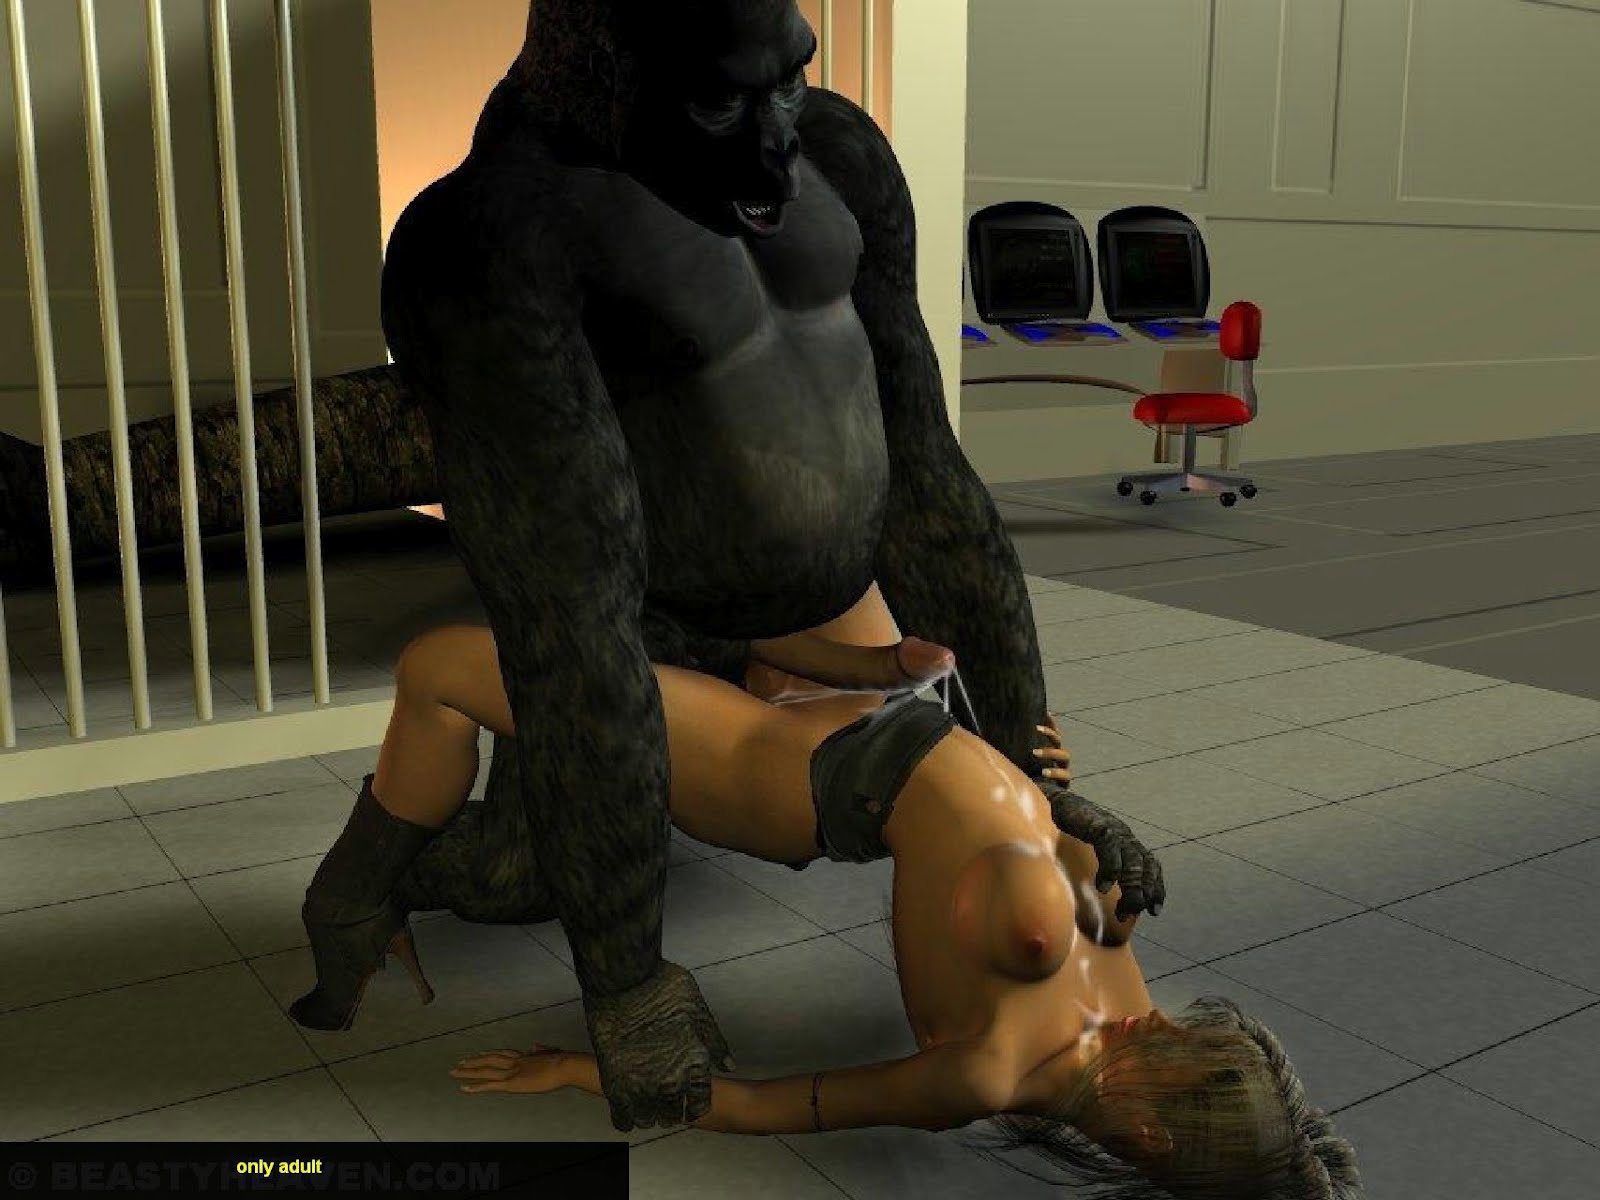 Gorilla and women fucking photo naked clip